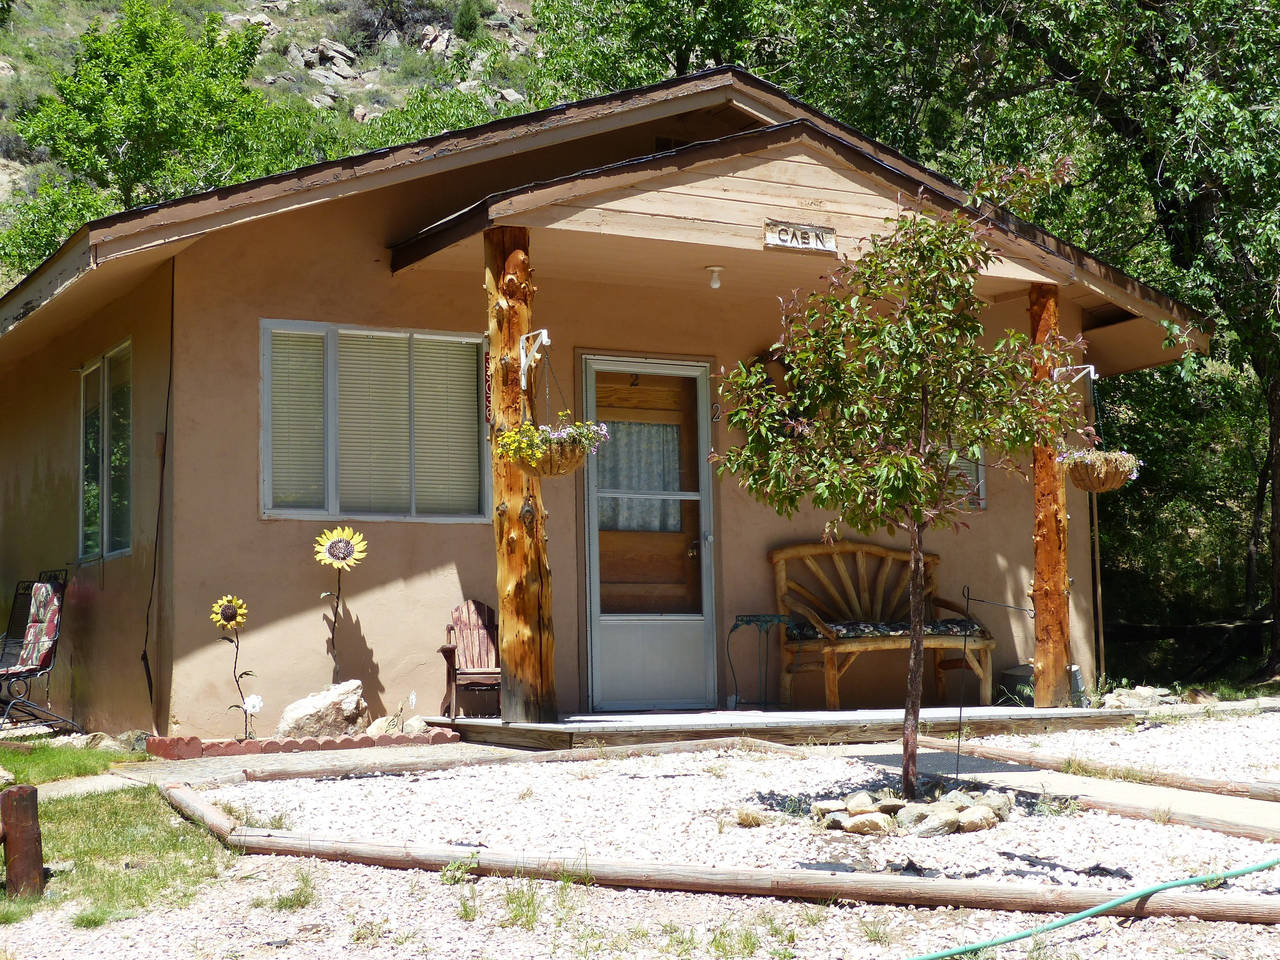 Cabin rental in poudre canyon near fort collins colorado for Cabin rentals near fort collins colorado